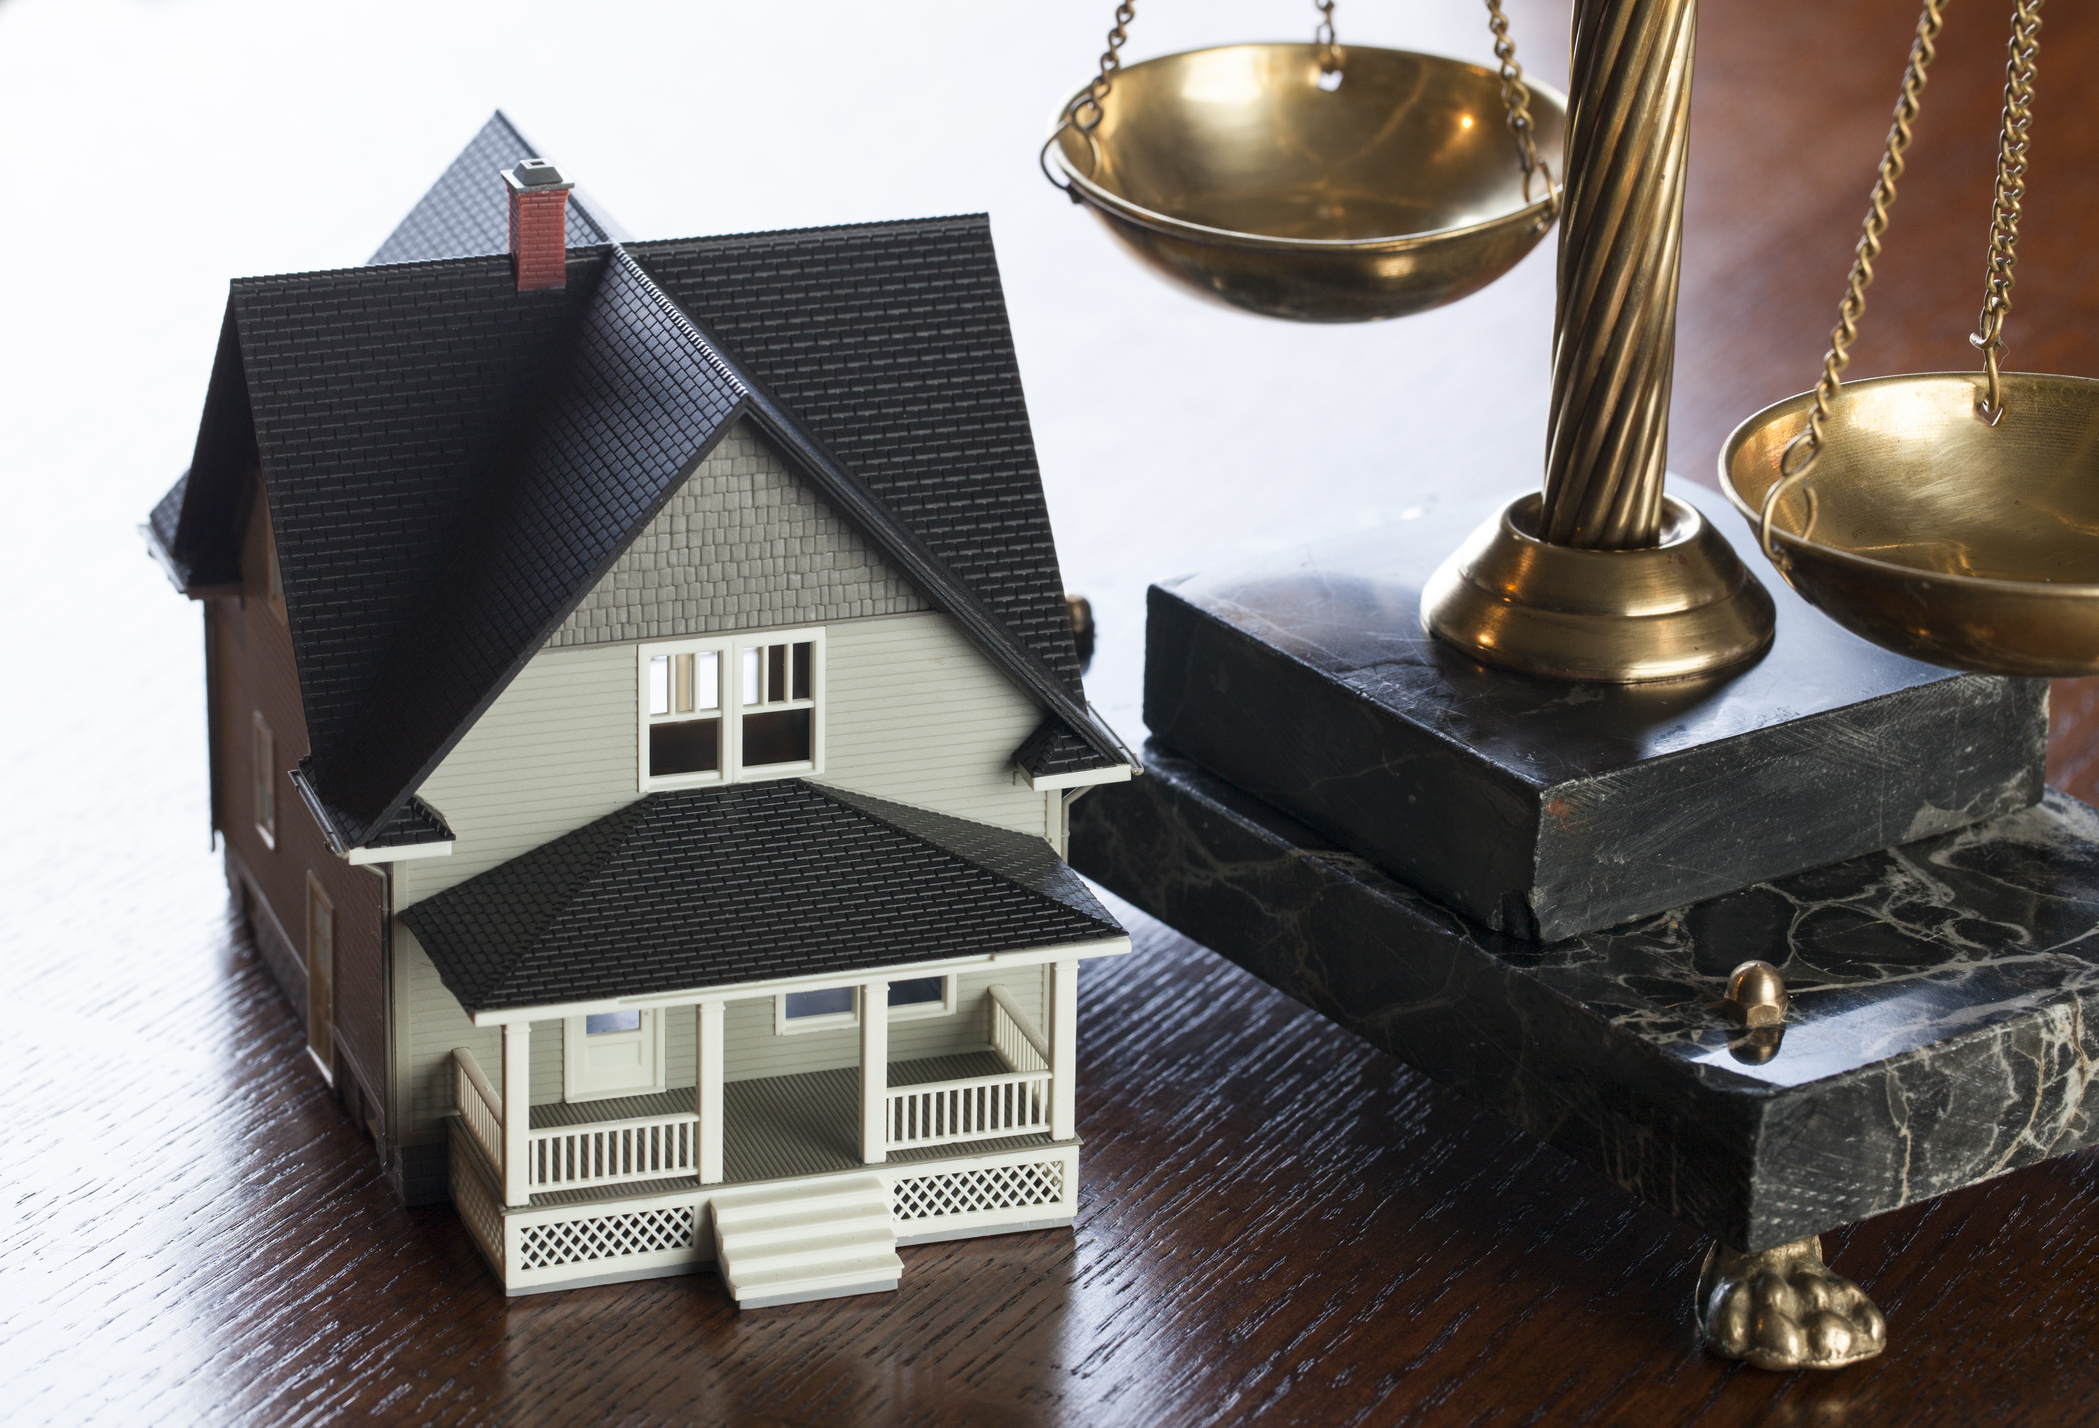 Real Estate Law - Our firm has extensive experience handling a wide range of residential and commercial real estate transactions.